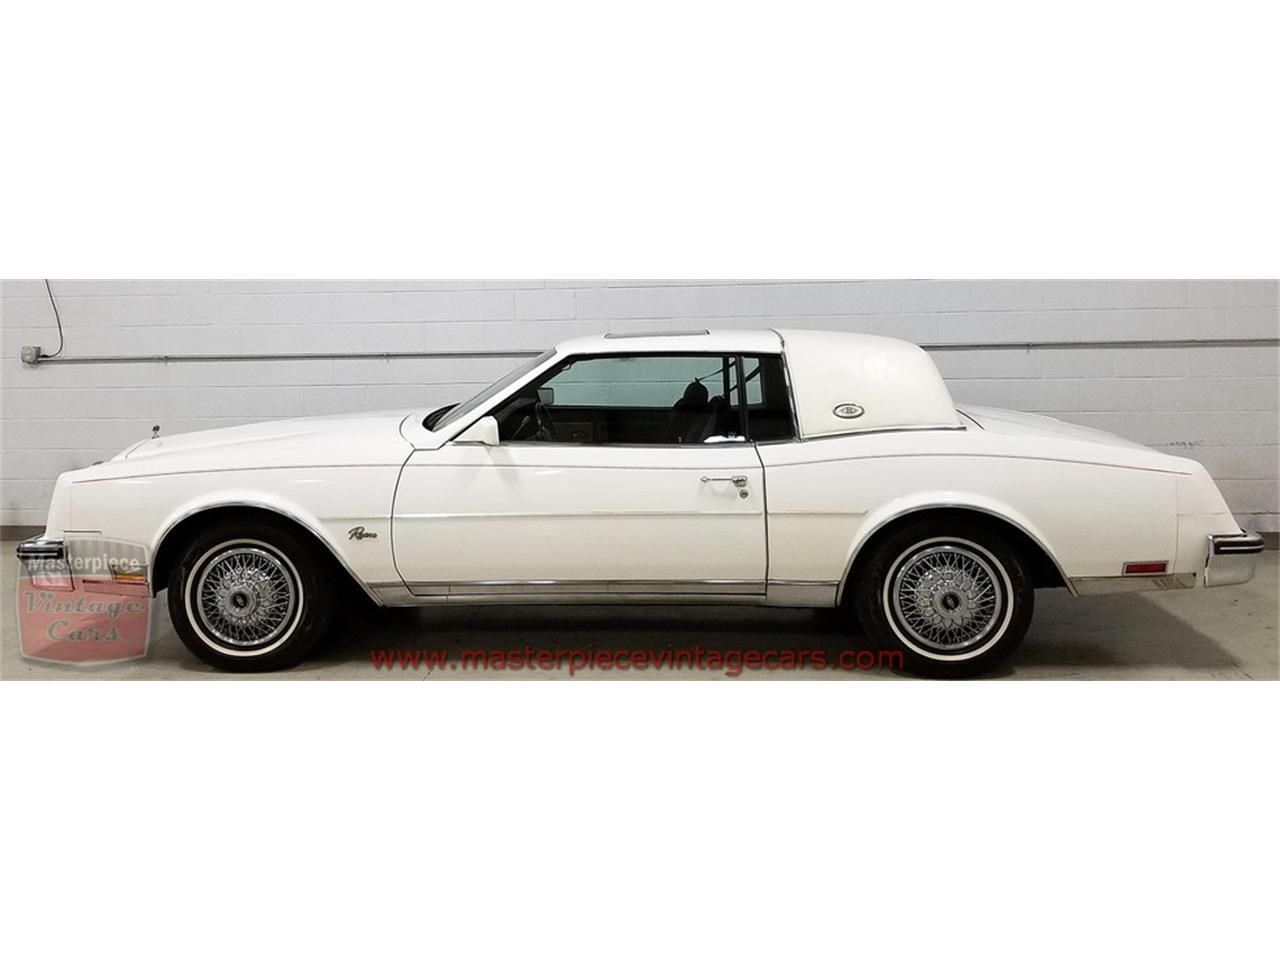 Large Picture of 1985 Buick Riviera located in Indiana Offered by Masterpiece Vintage Cars - L82V